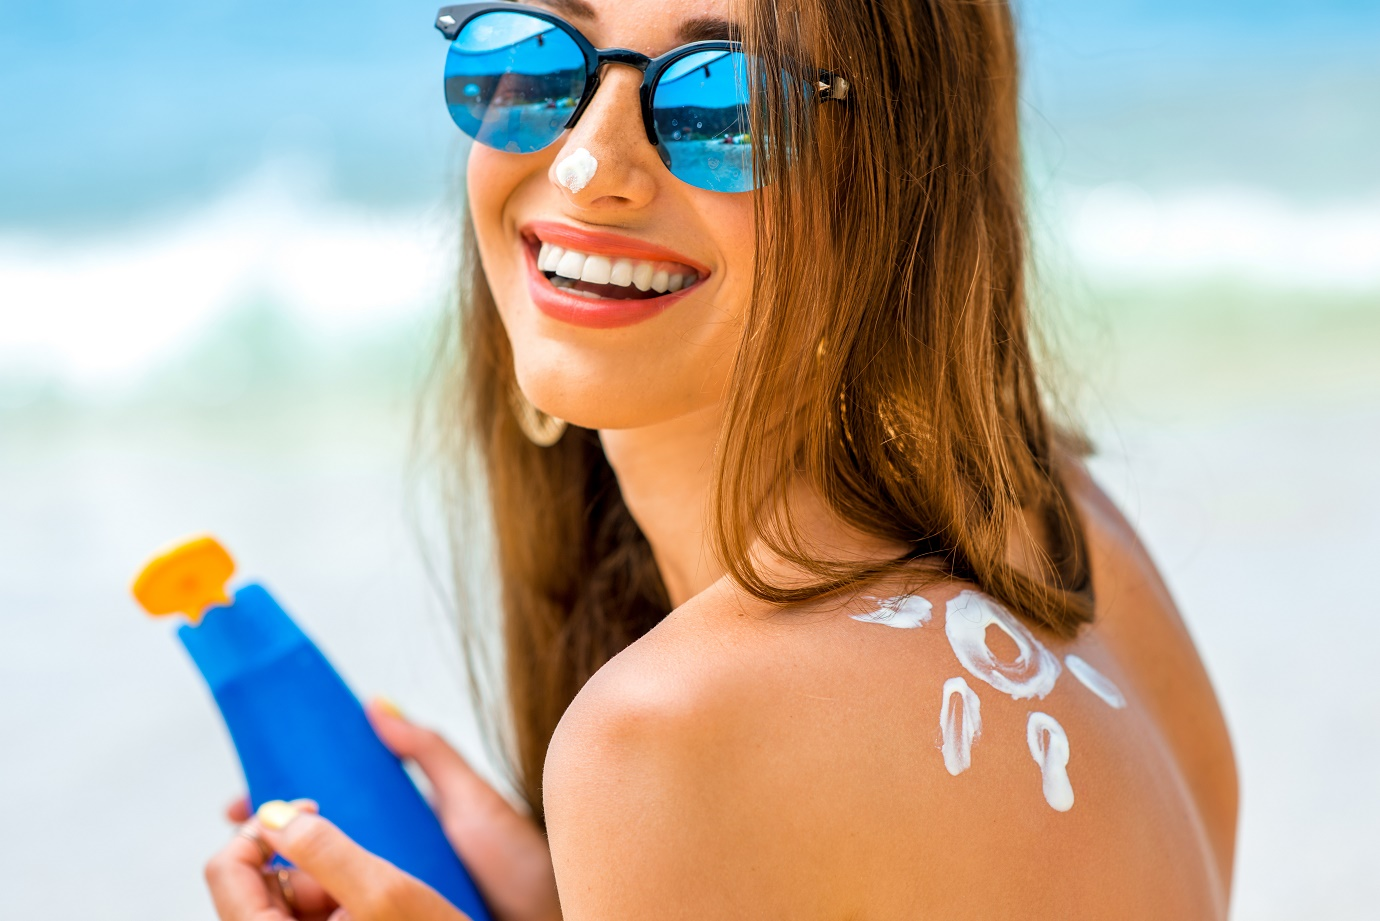 selling beauty products in summertime